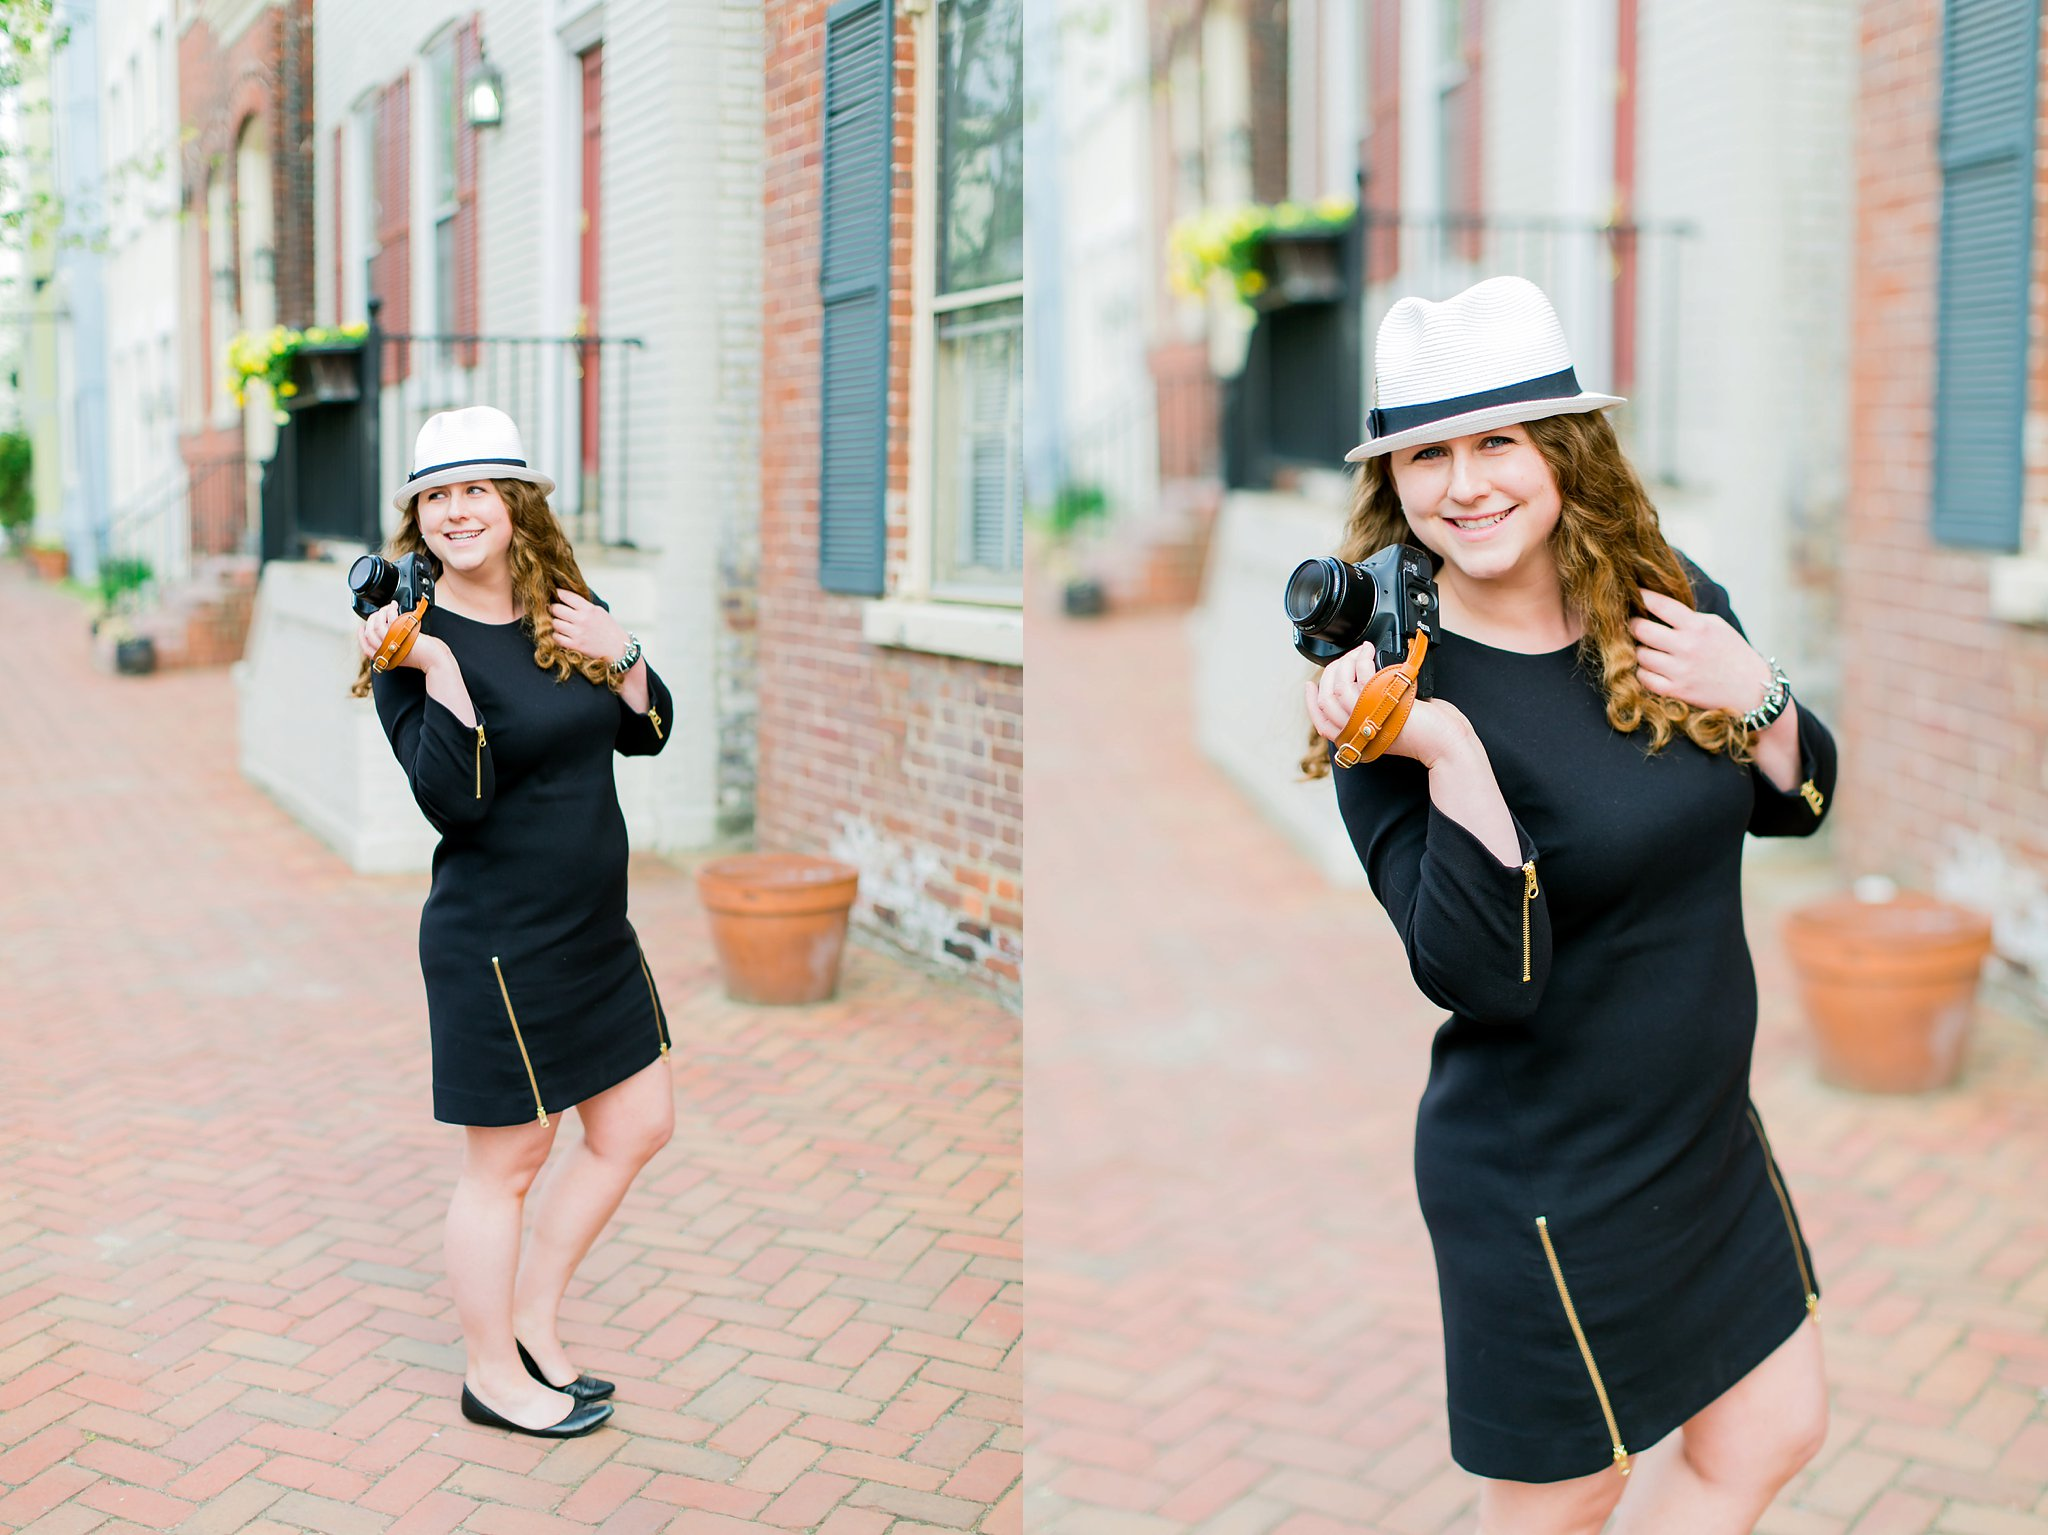 Old Town Alexandria Portrait Photography Kate Mentoring Session-0568.jpg